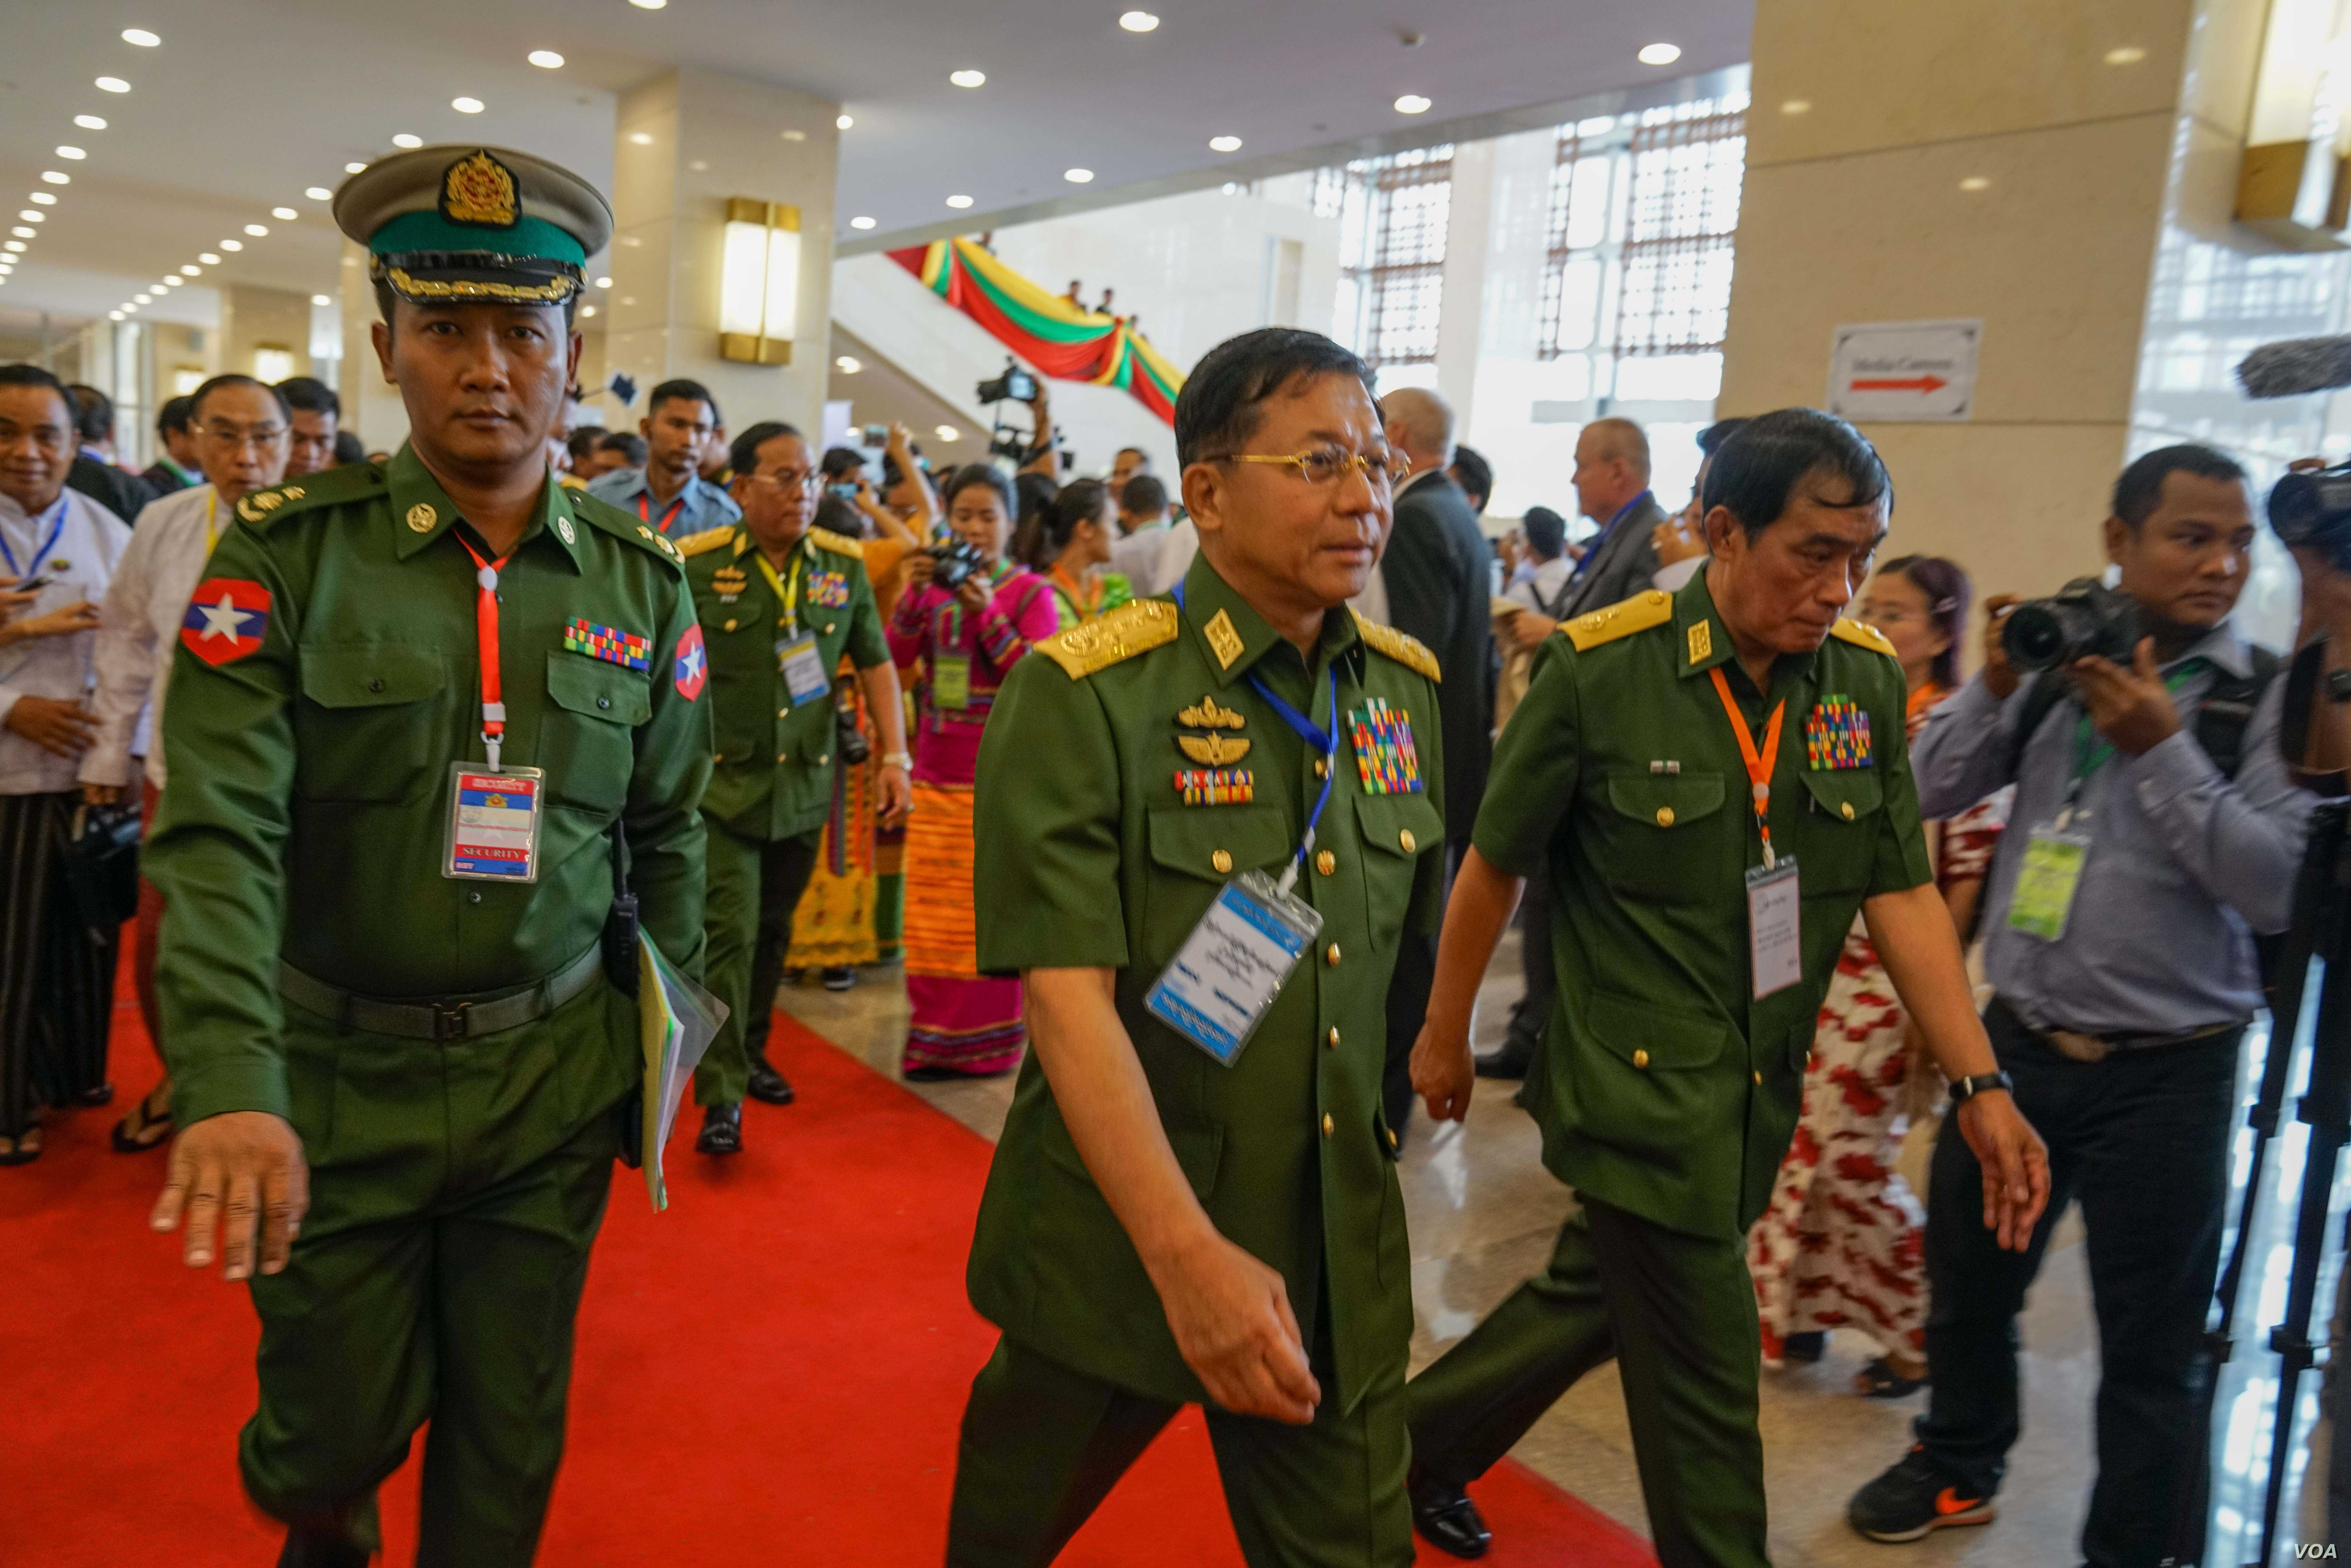 Myanmar Commander in Chief Min Aung Hlaing arrives at peace talks in Naypyitaw, May 24, 2017. (A. N. Soe for VOA)